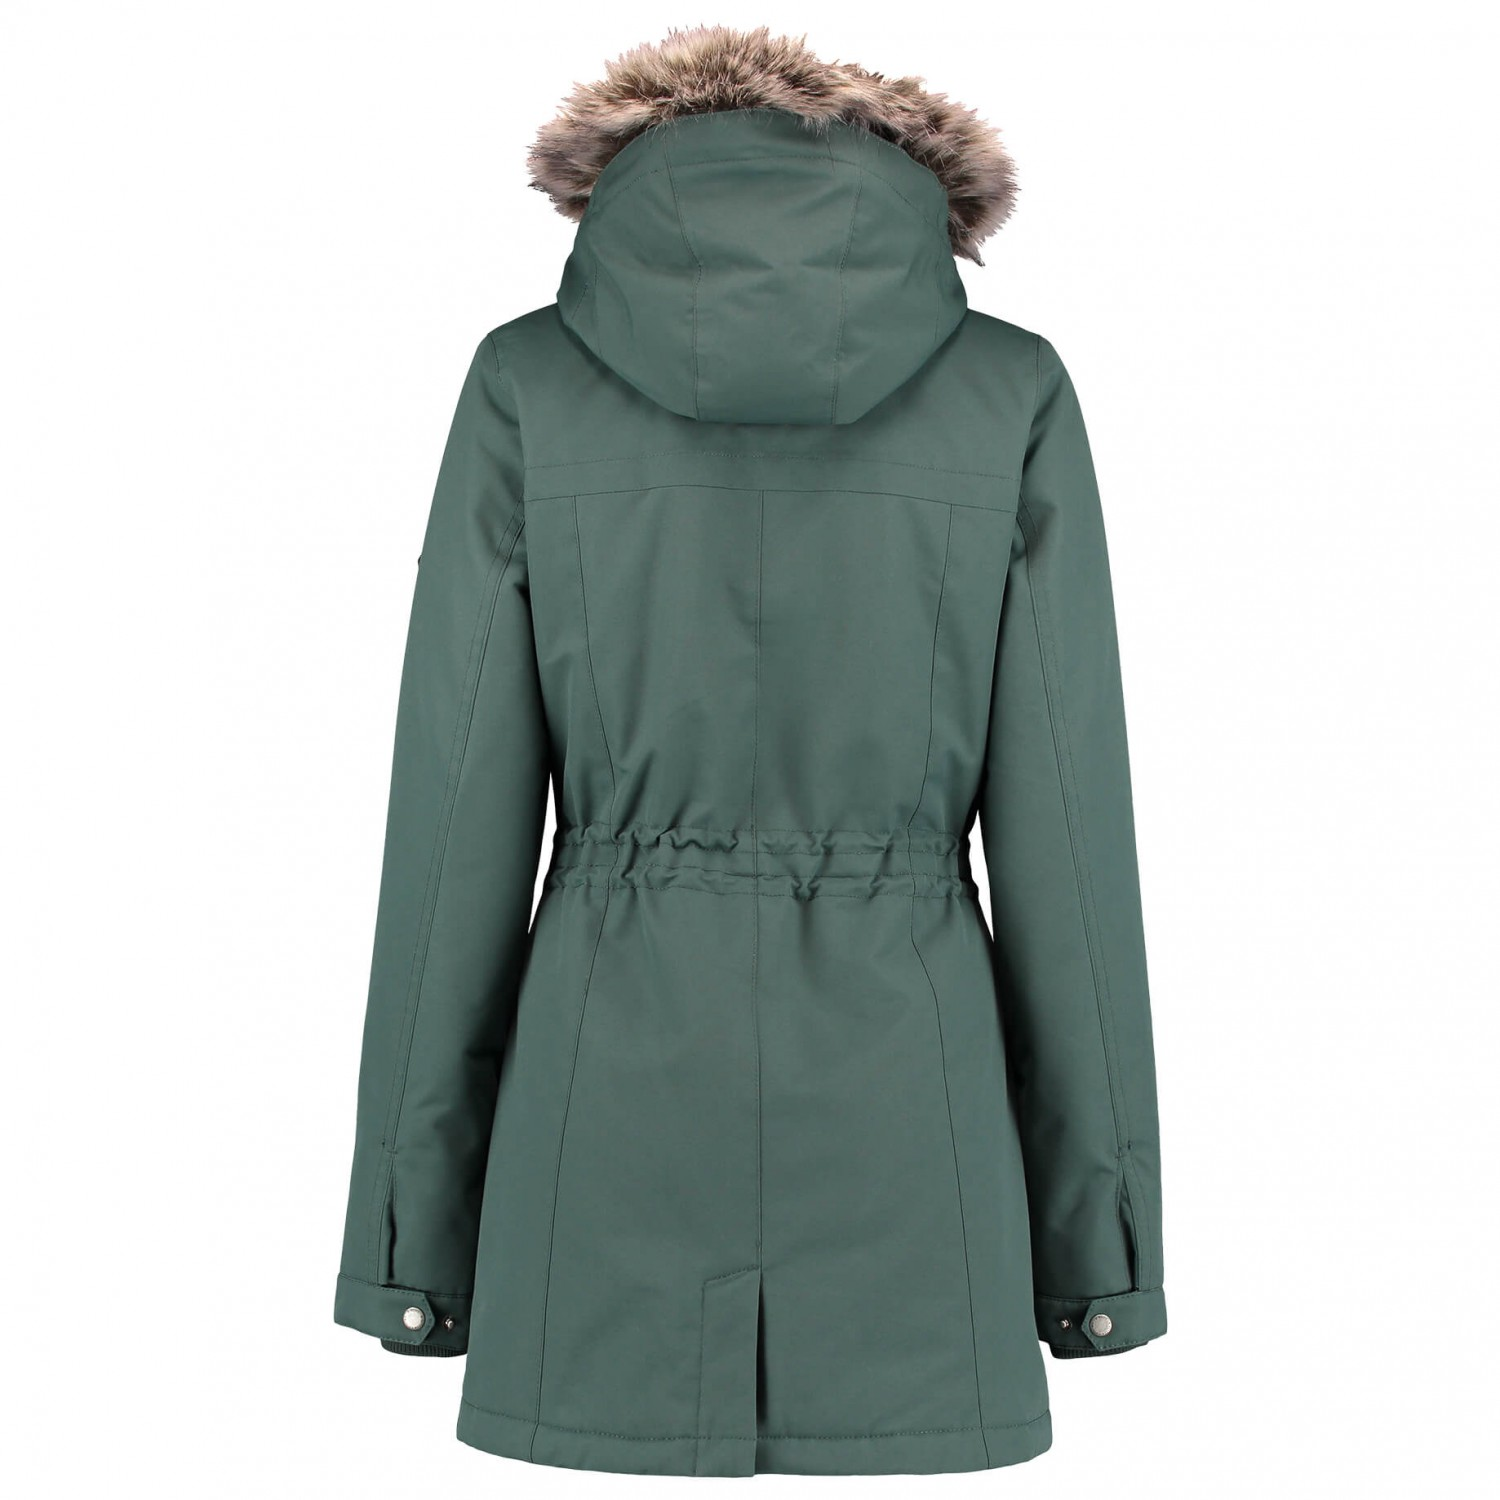 Bergfreunde Online O'neill Buy Coat Journey Parka Women's eu nxTq6aT